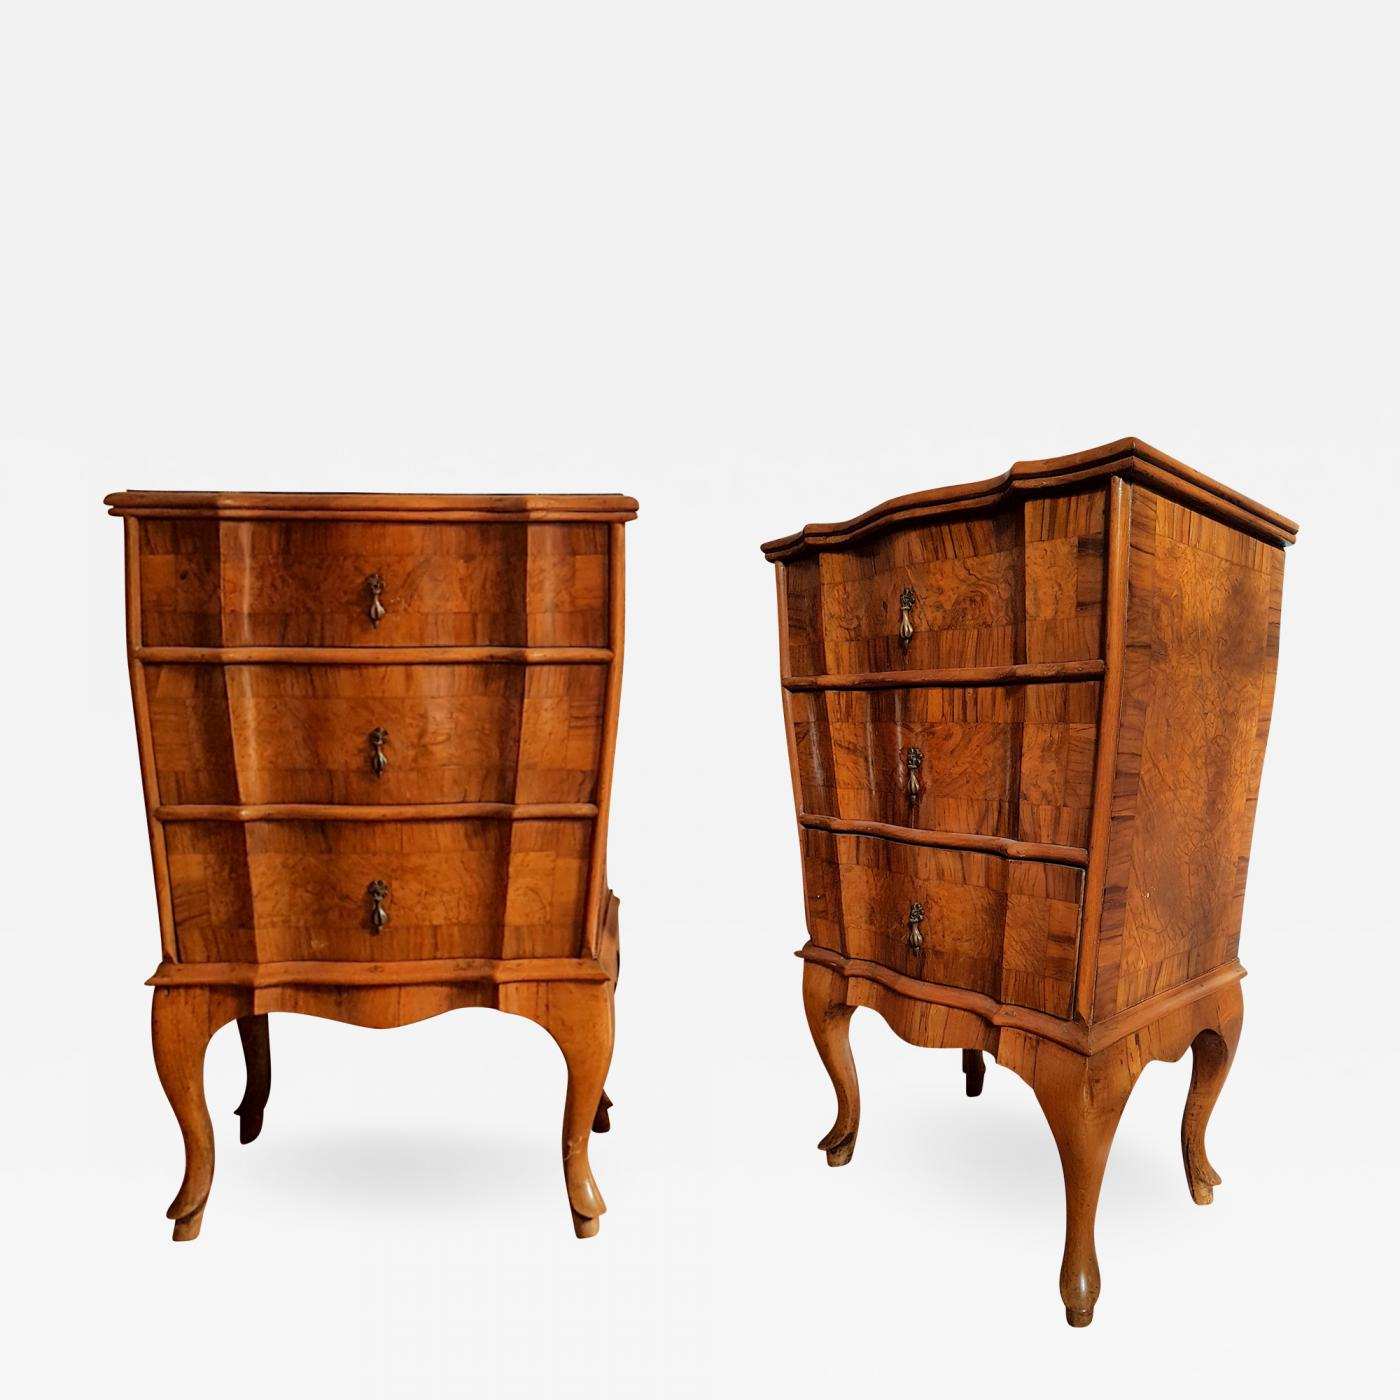 Provincial Bedside Tables Pair Of French Provincial Bedside Cabinets In Walnut Marquetry Early 1900s